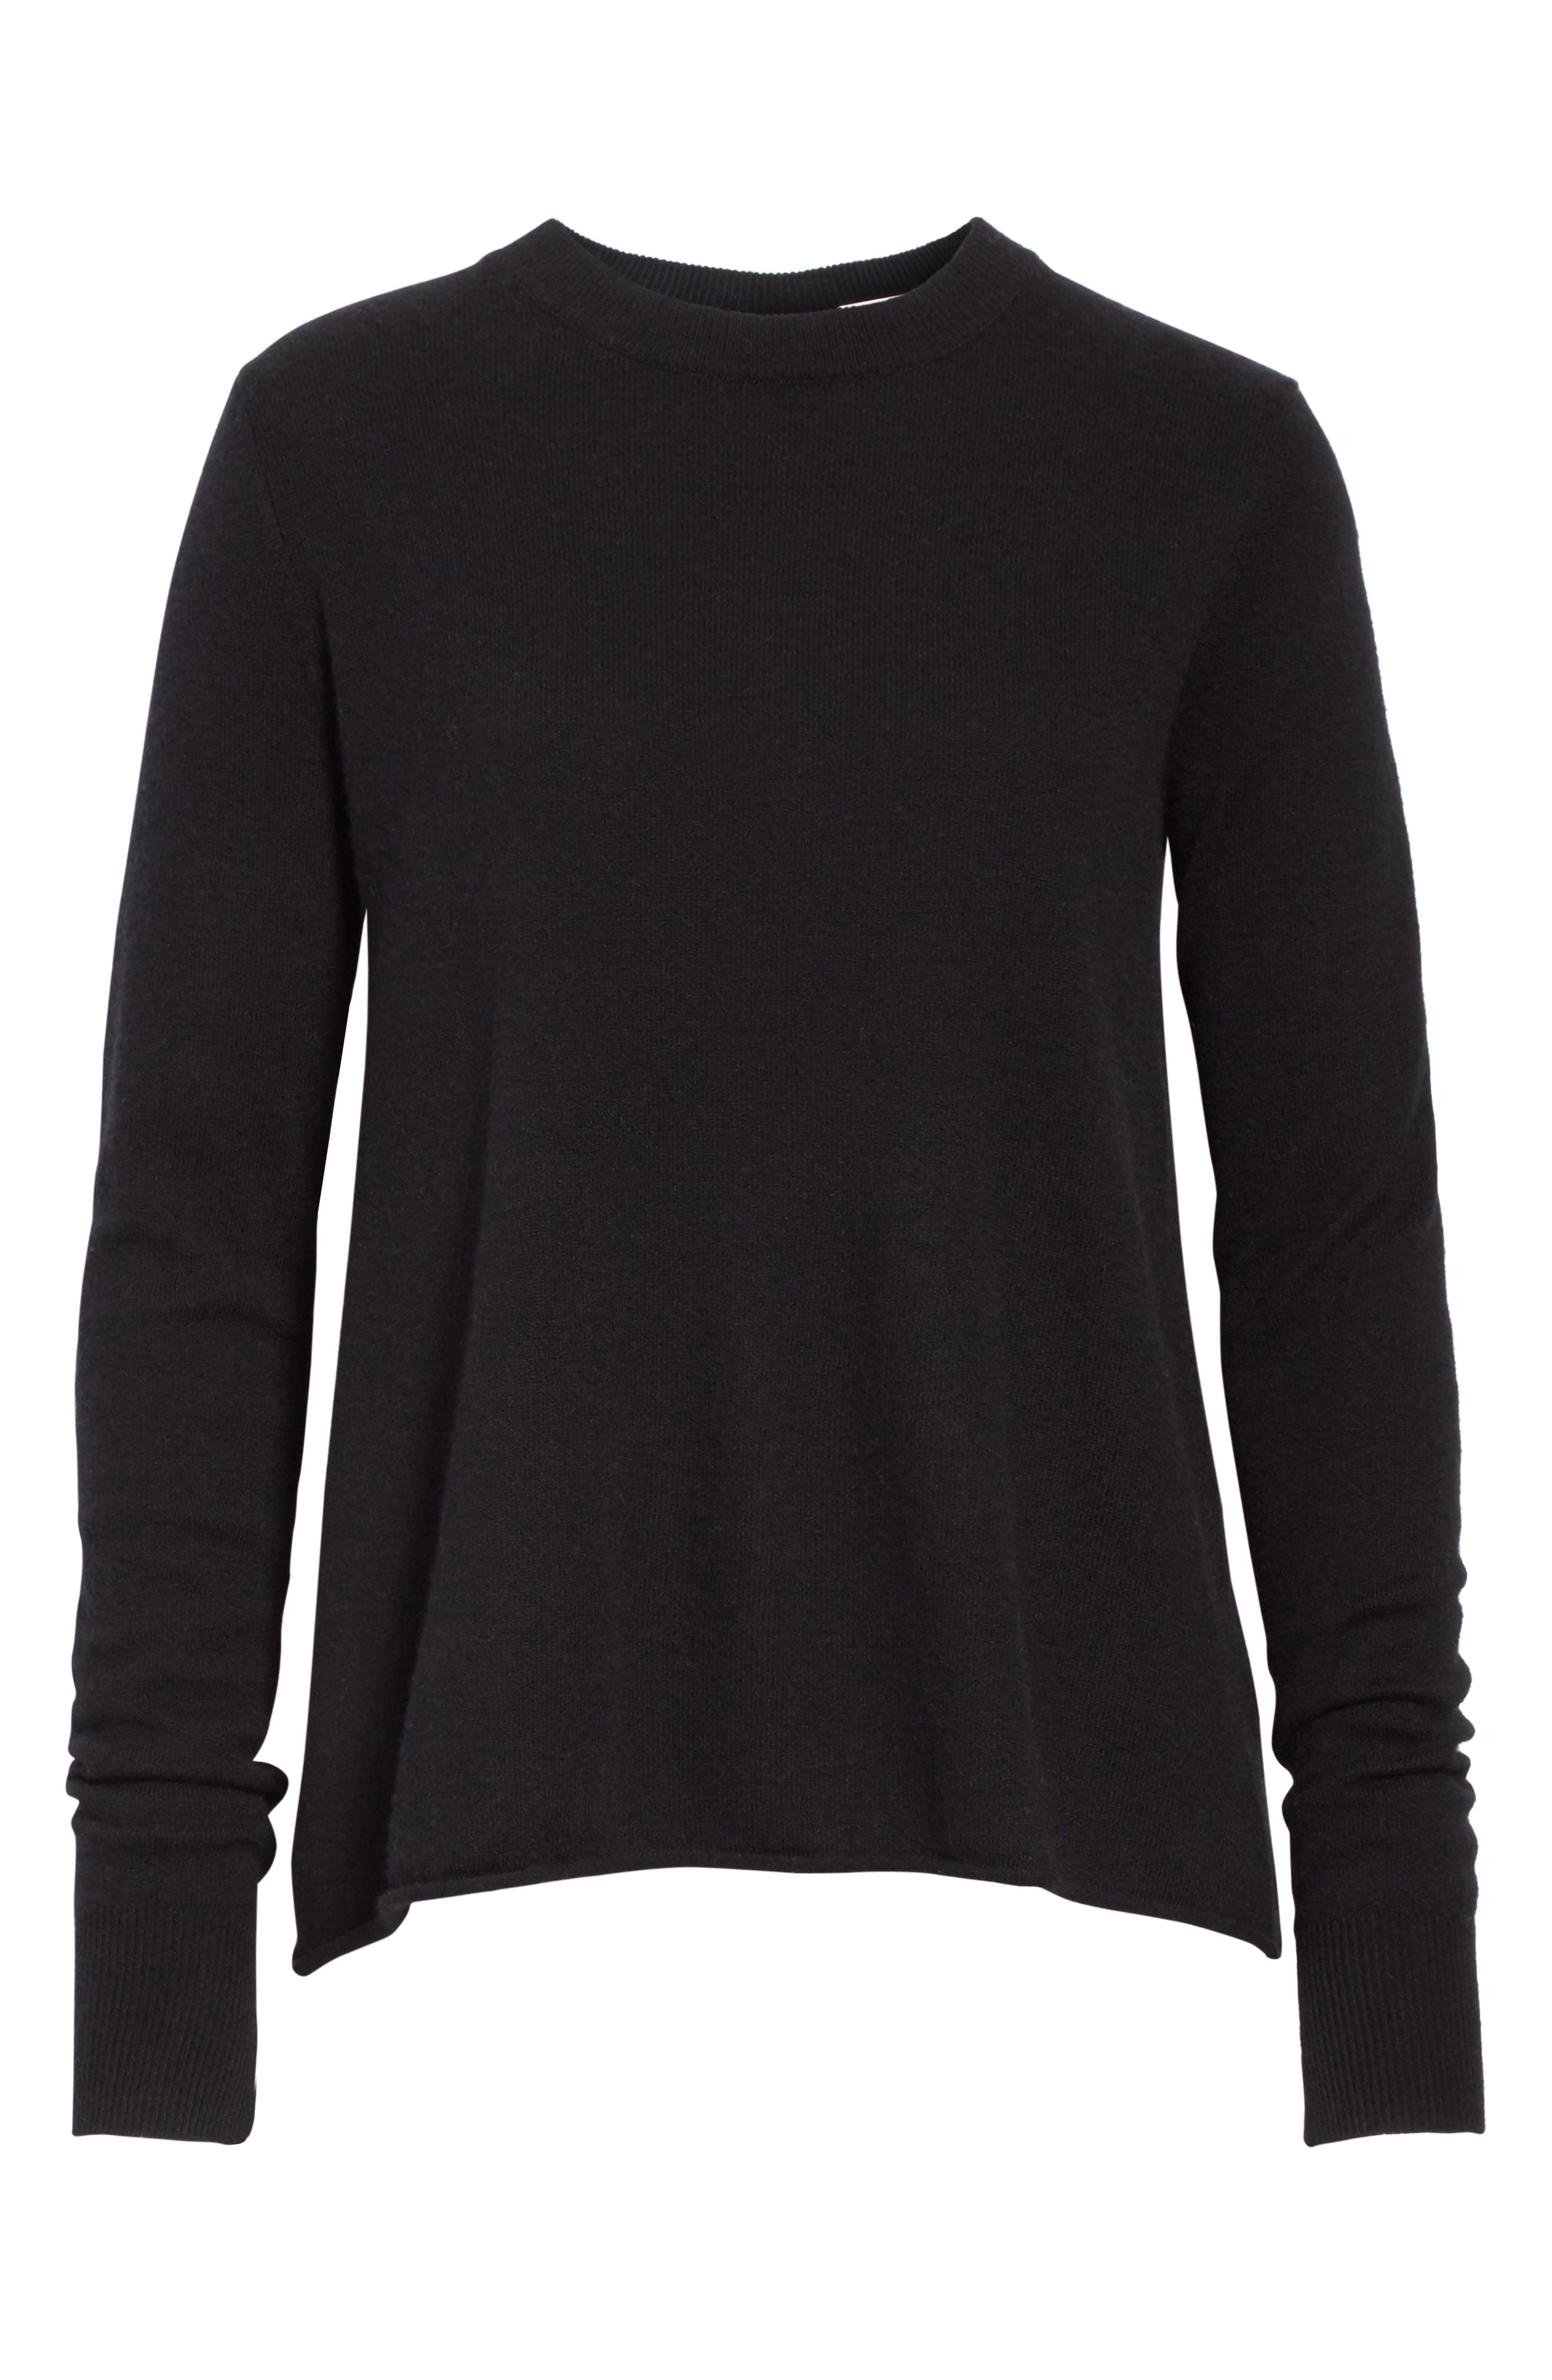 Valerie Lace-Up Wool & Cashmere Sweater,                             Alternate thumbnail 6, color,                             001